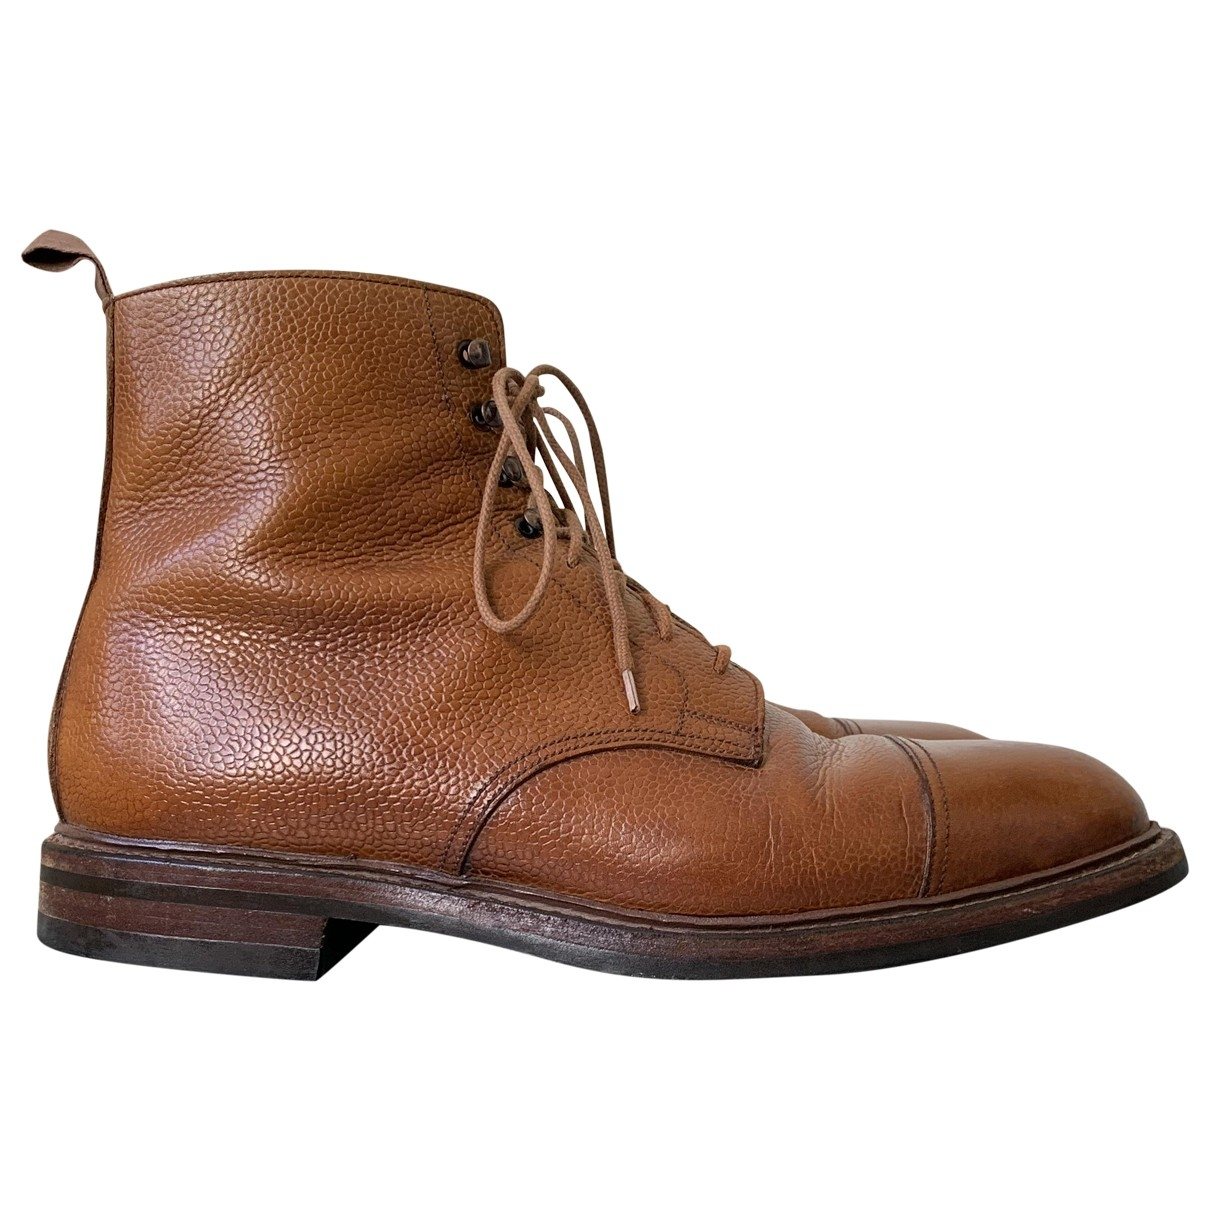 Botas de Cuero Crockett& Jones